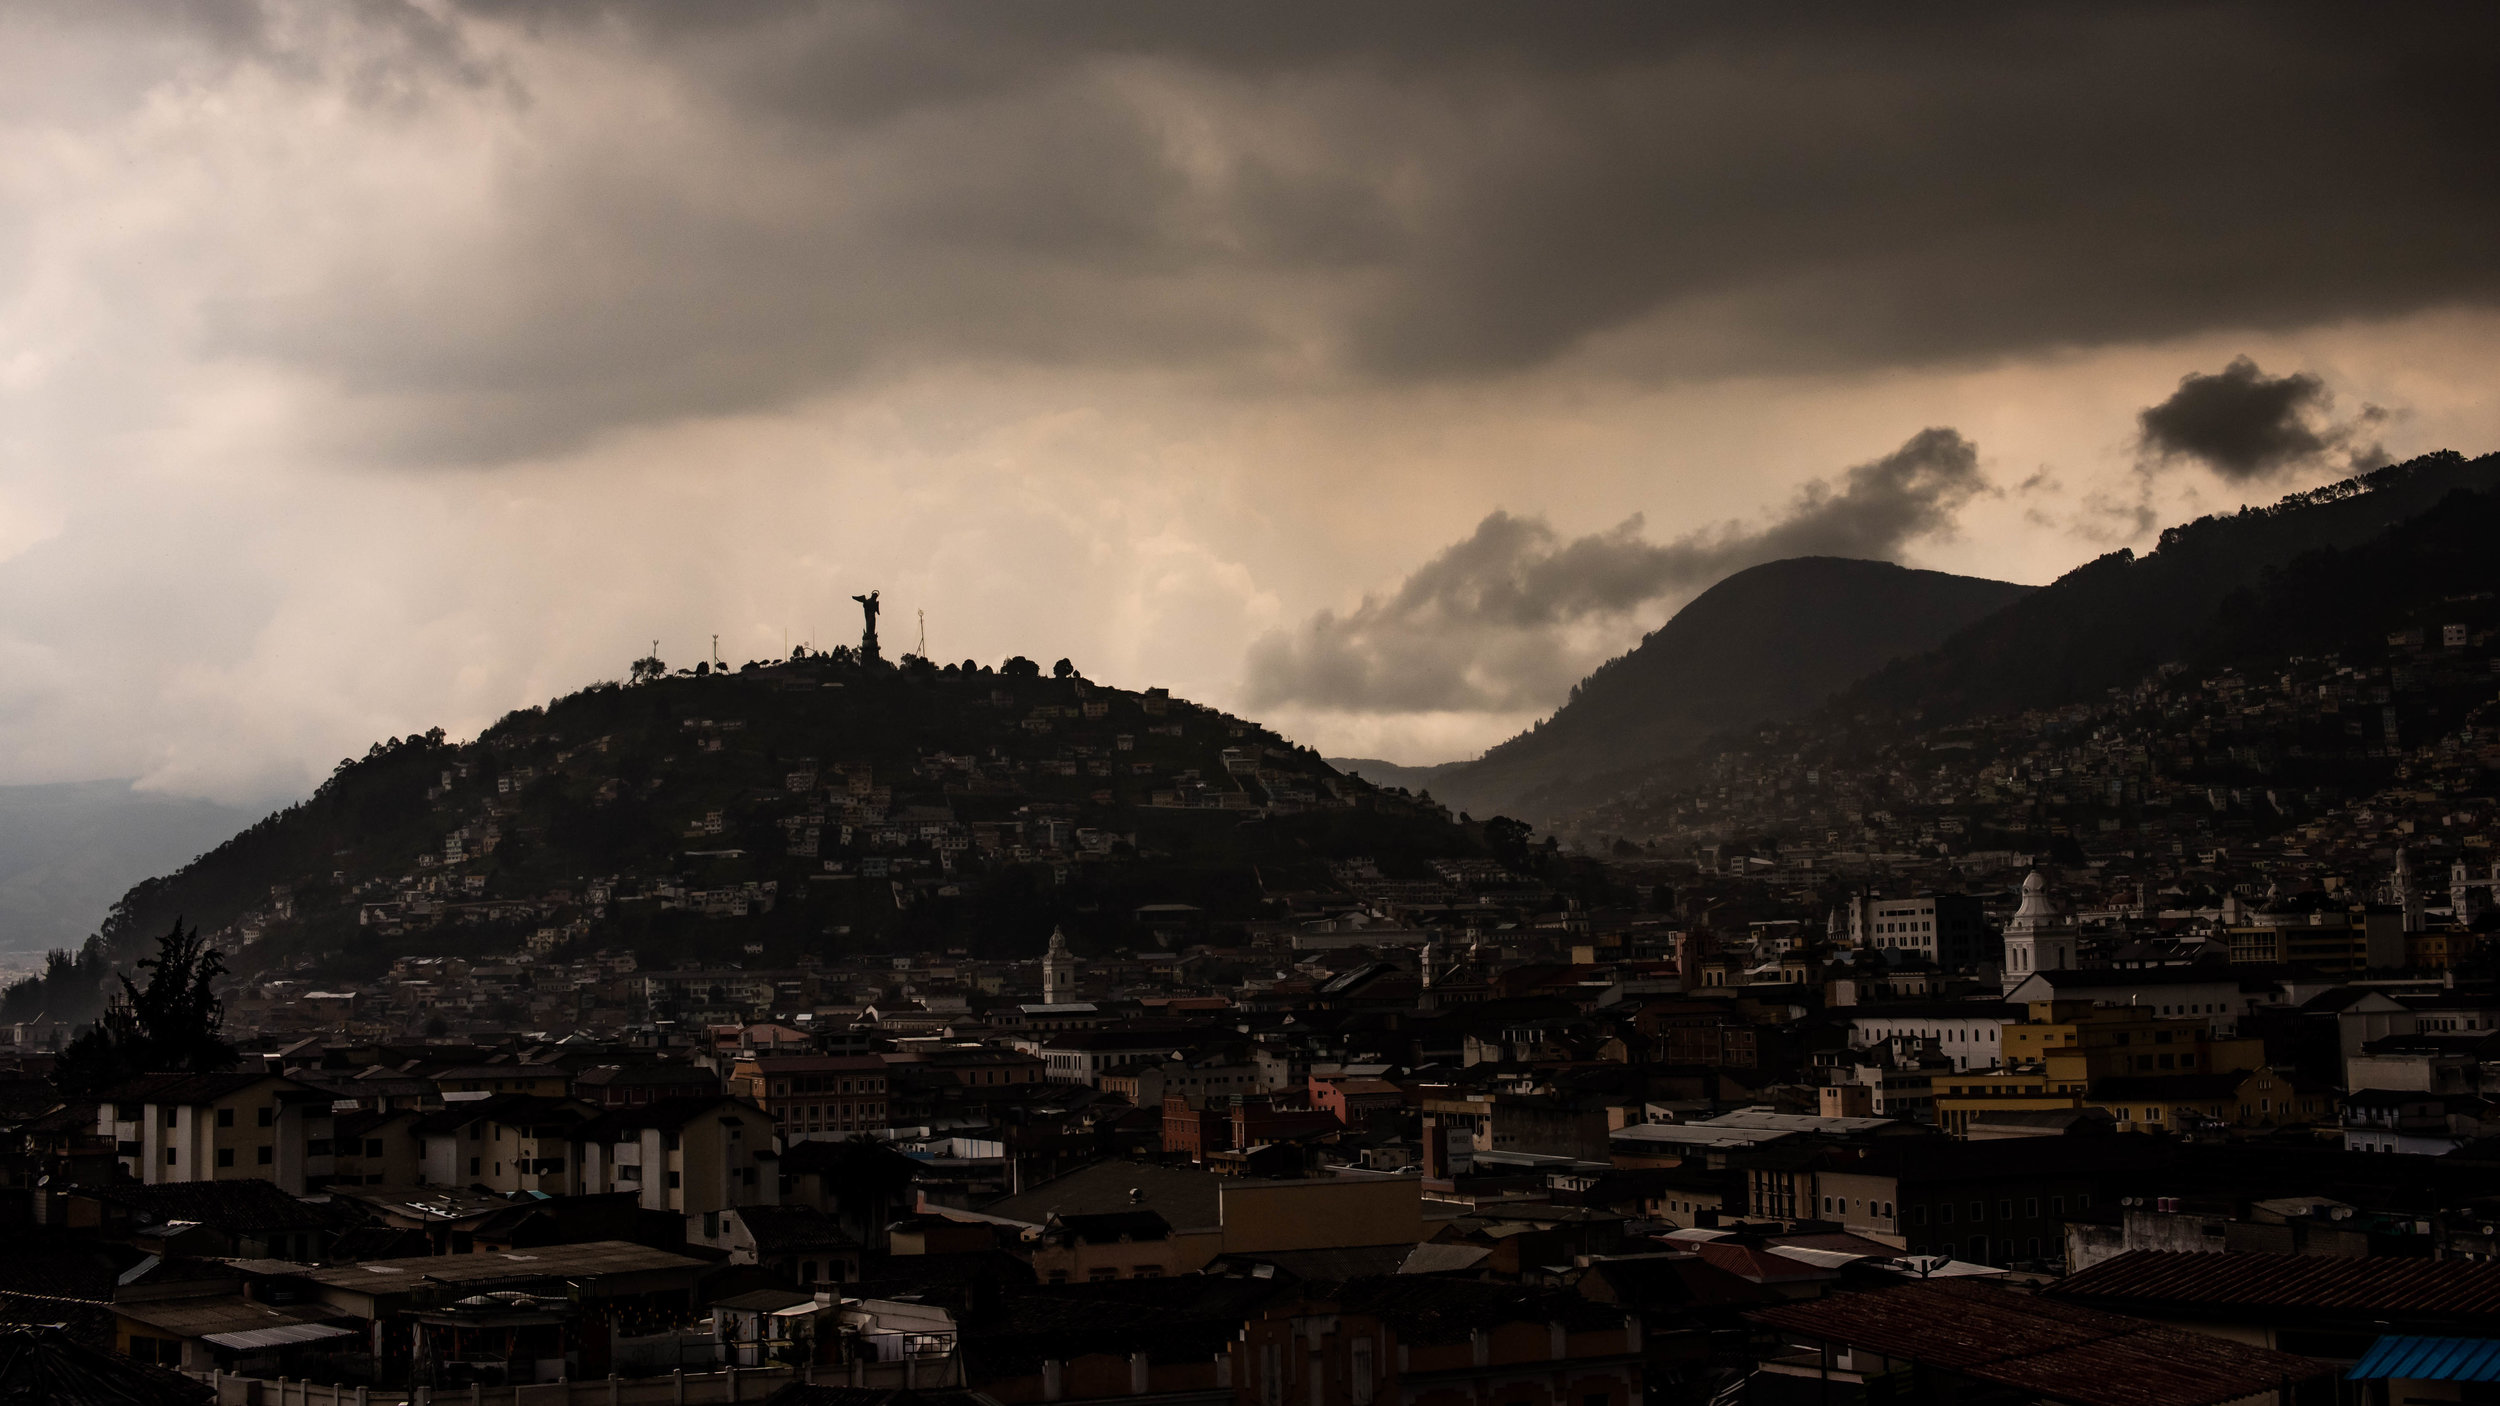 Quito right before a storm.